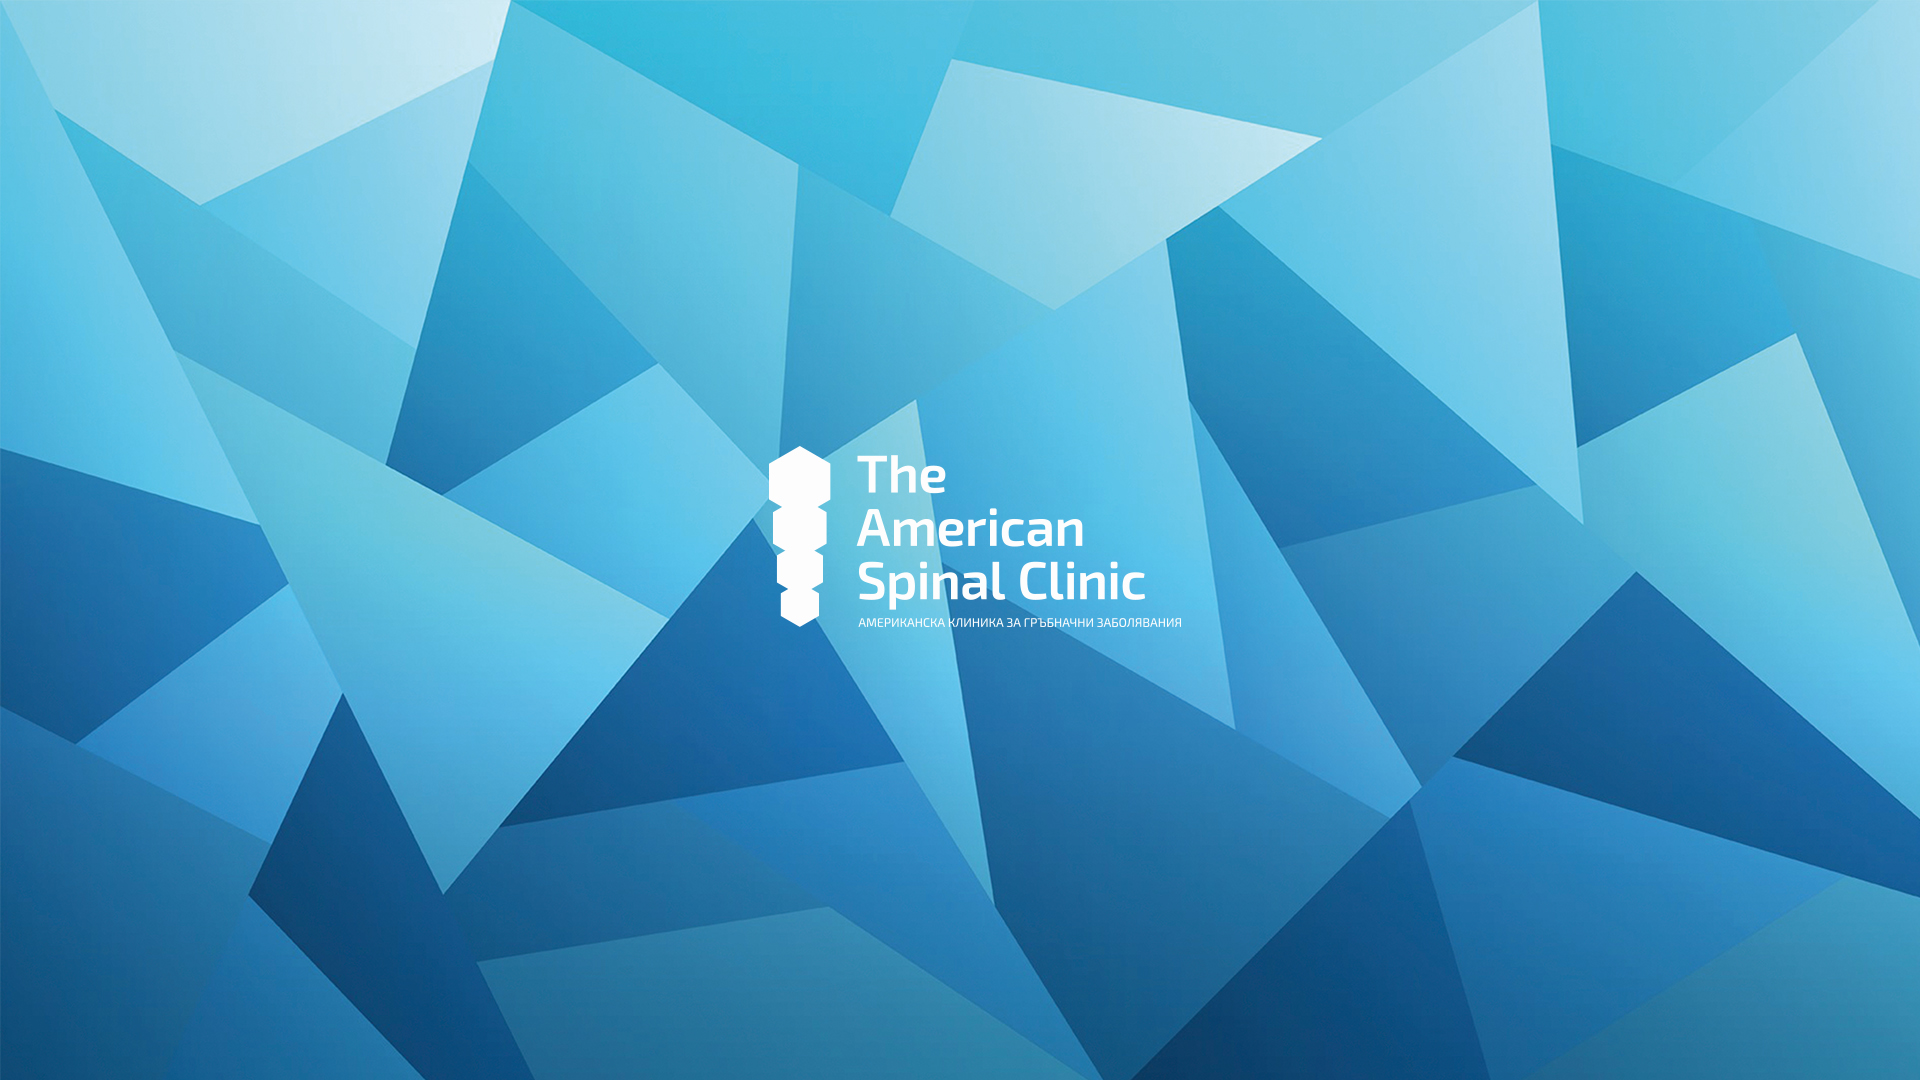 The American Spinal Clinic